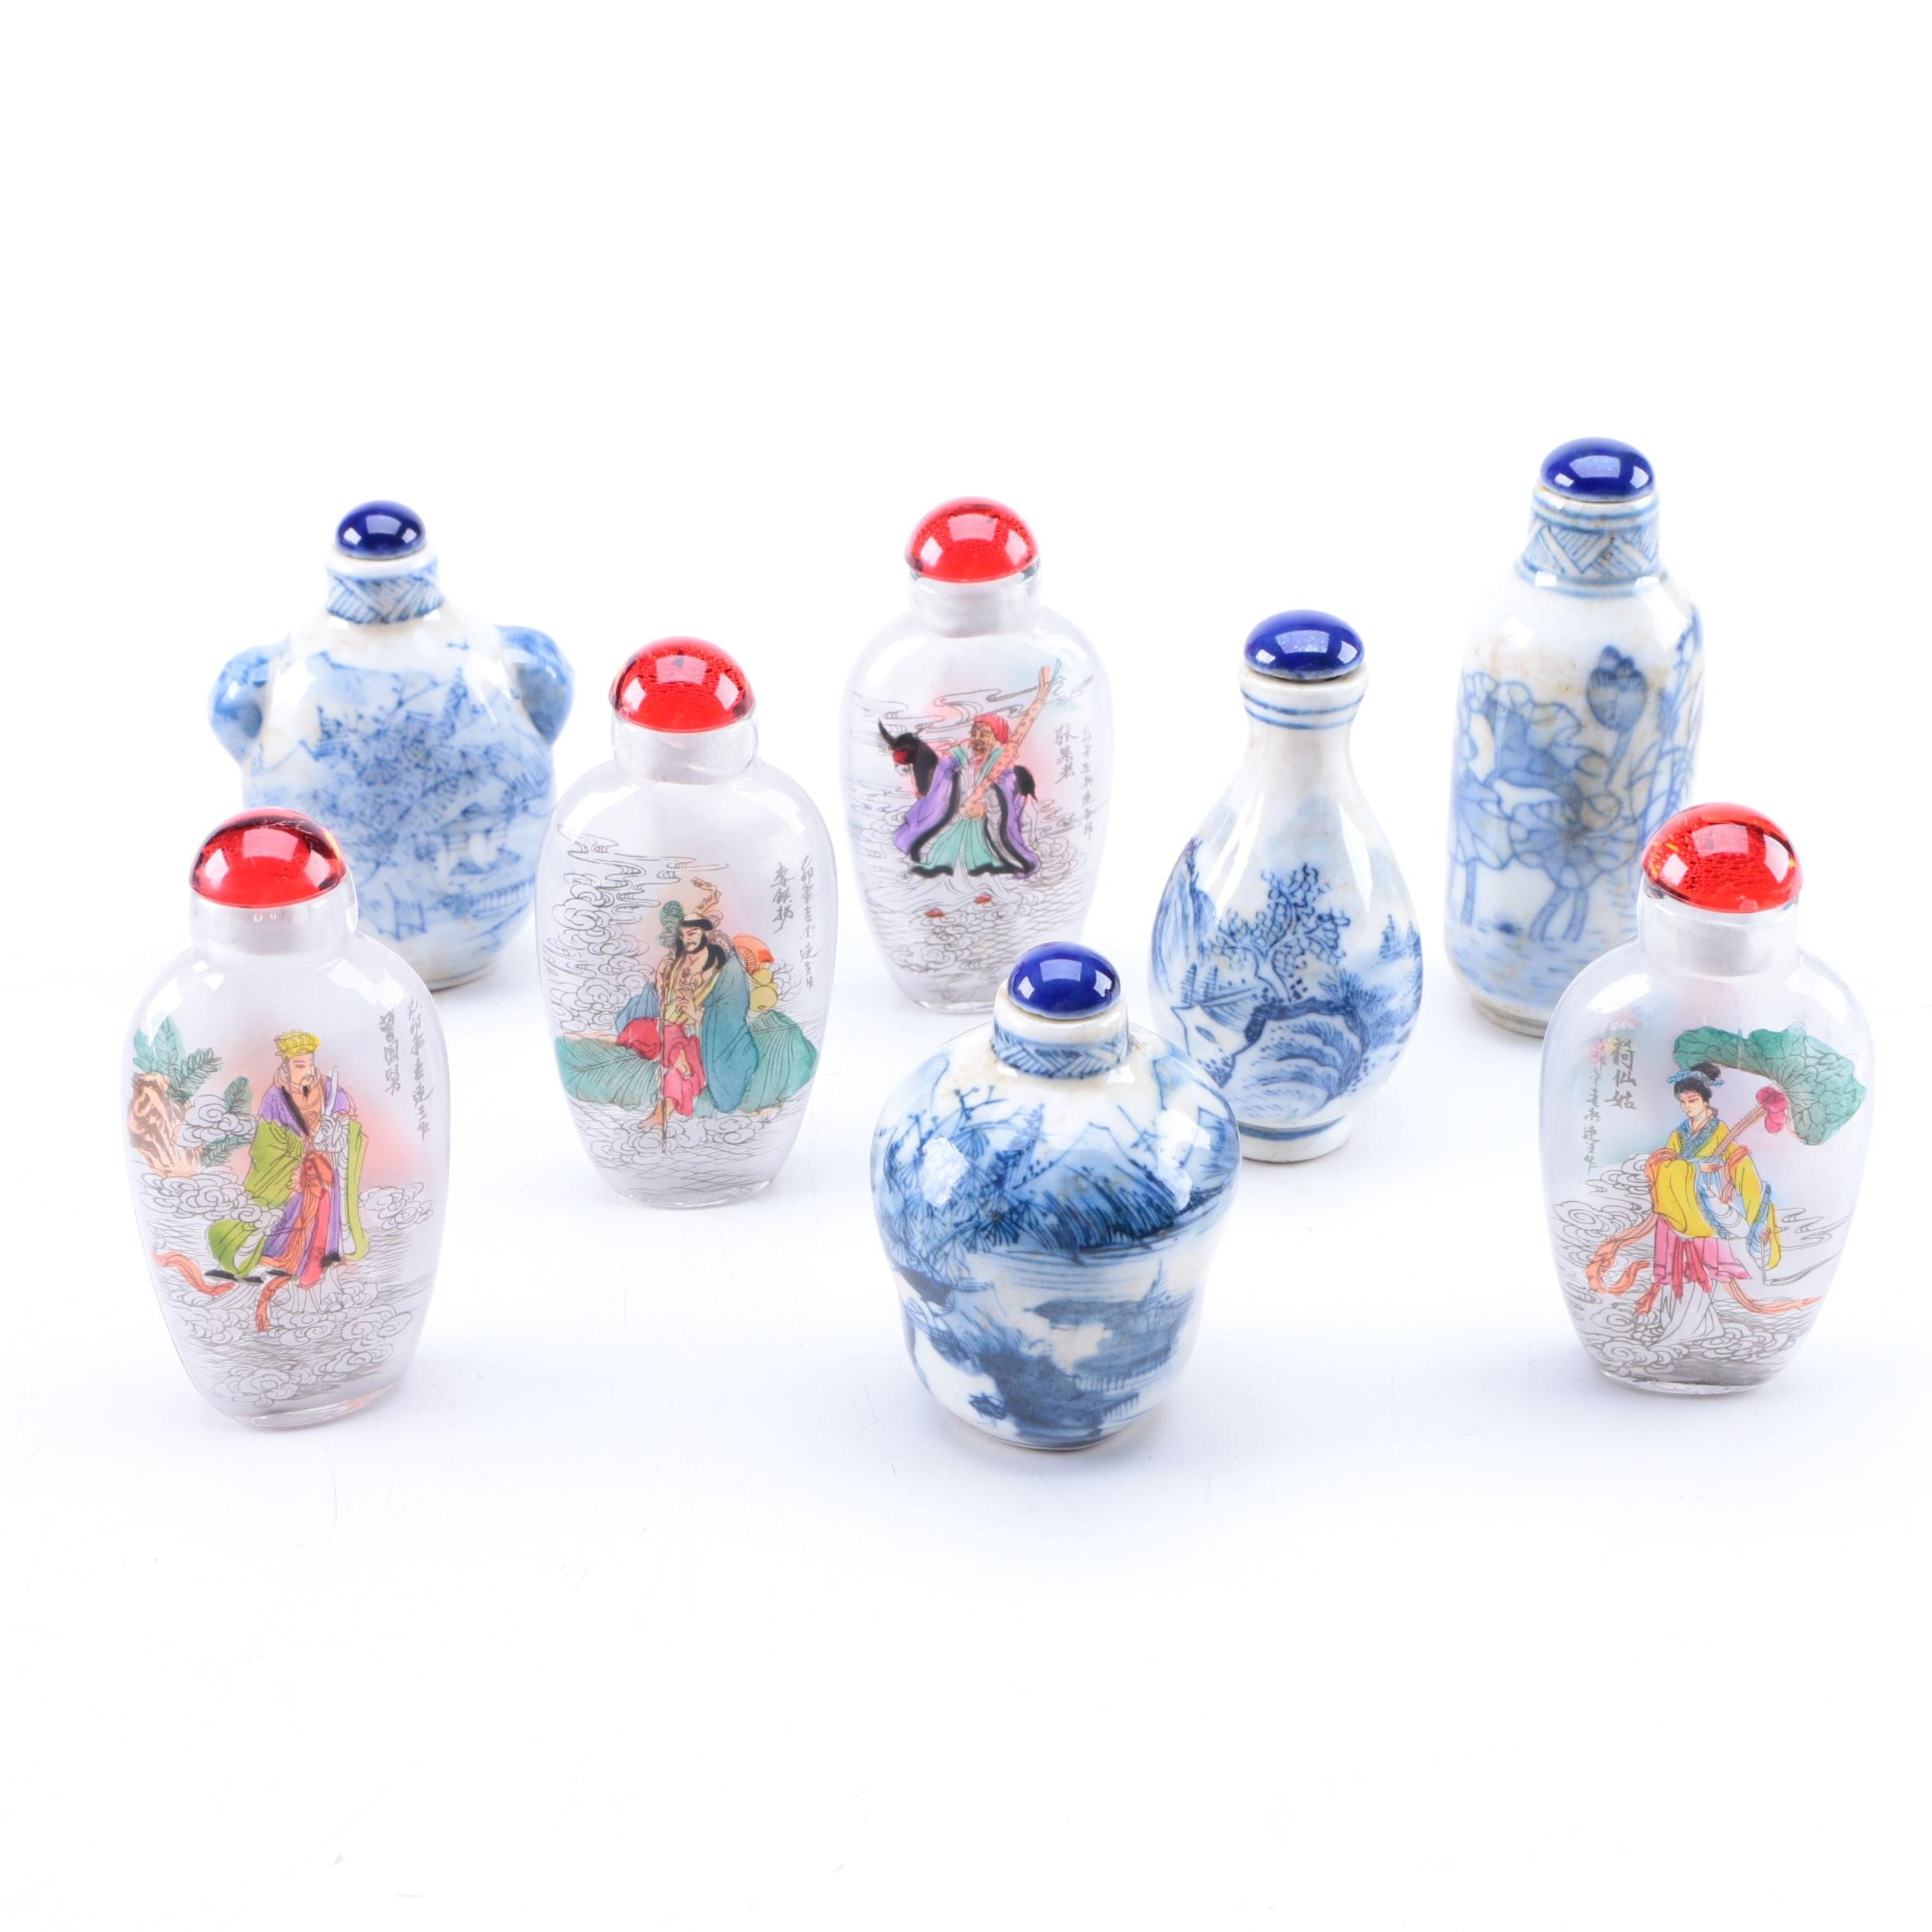 Collection of Glass and Porcelain Chinese Snuff Bottles